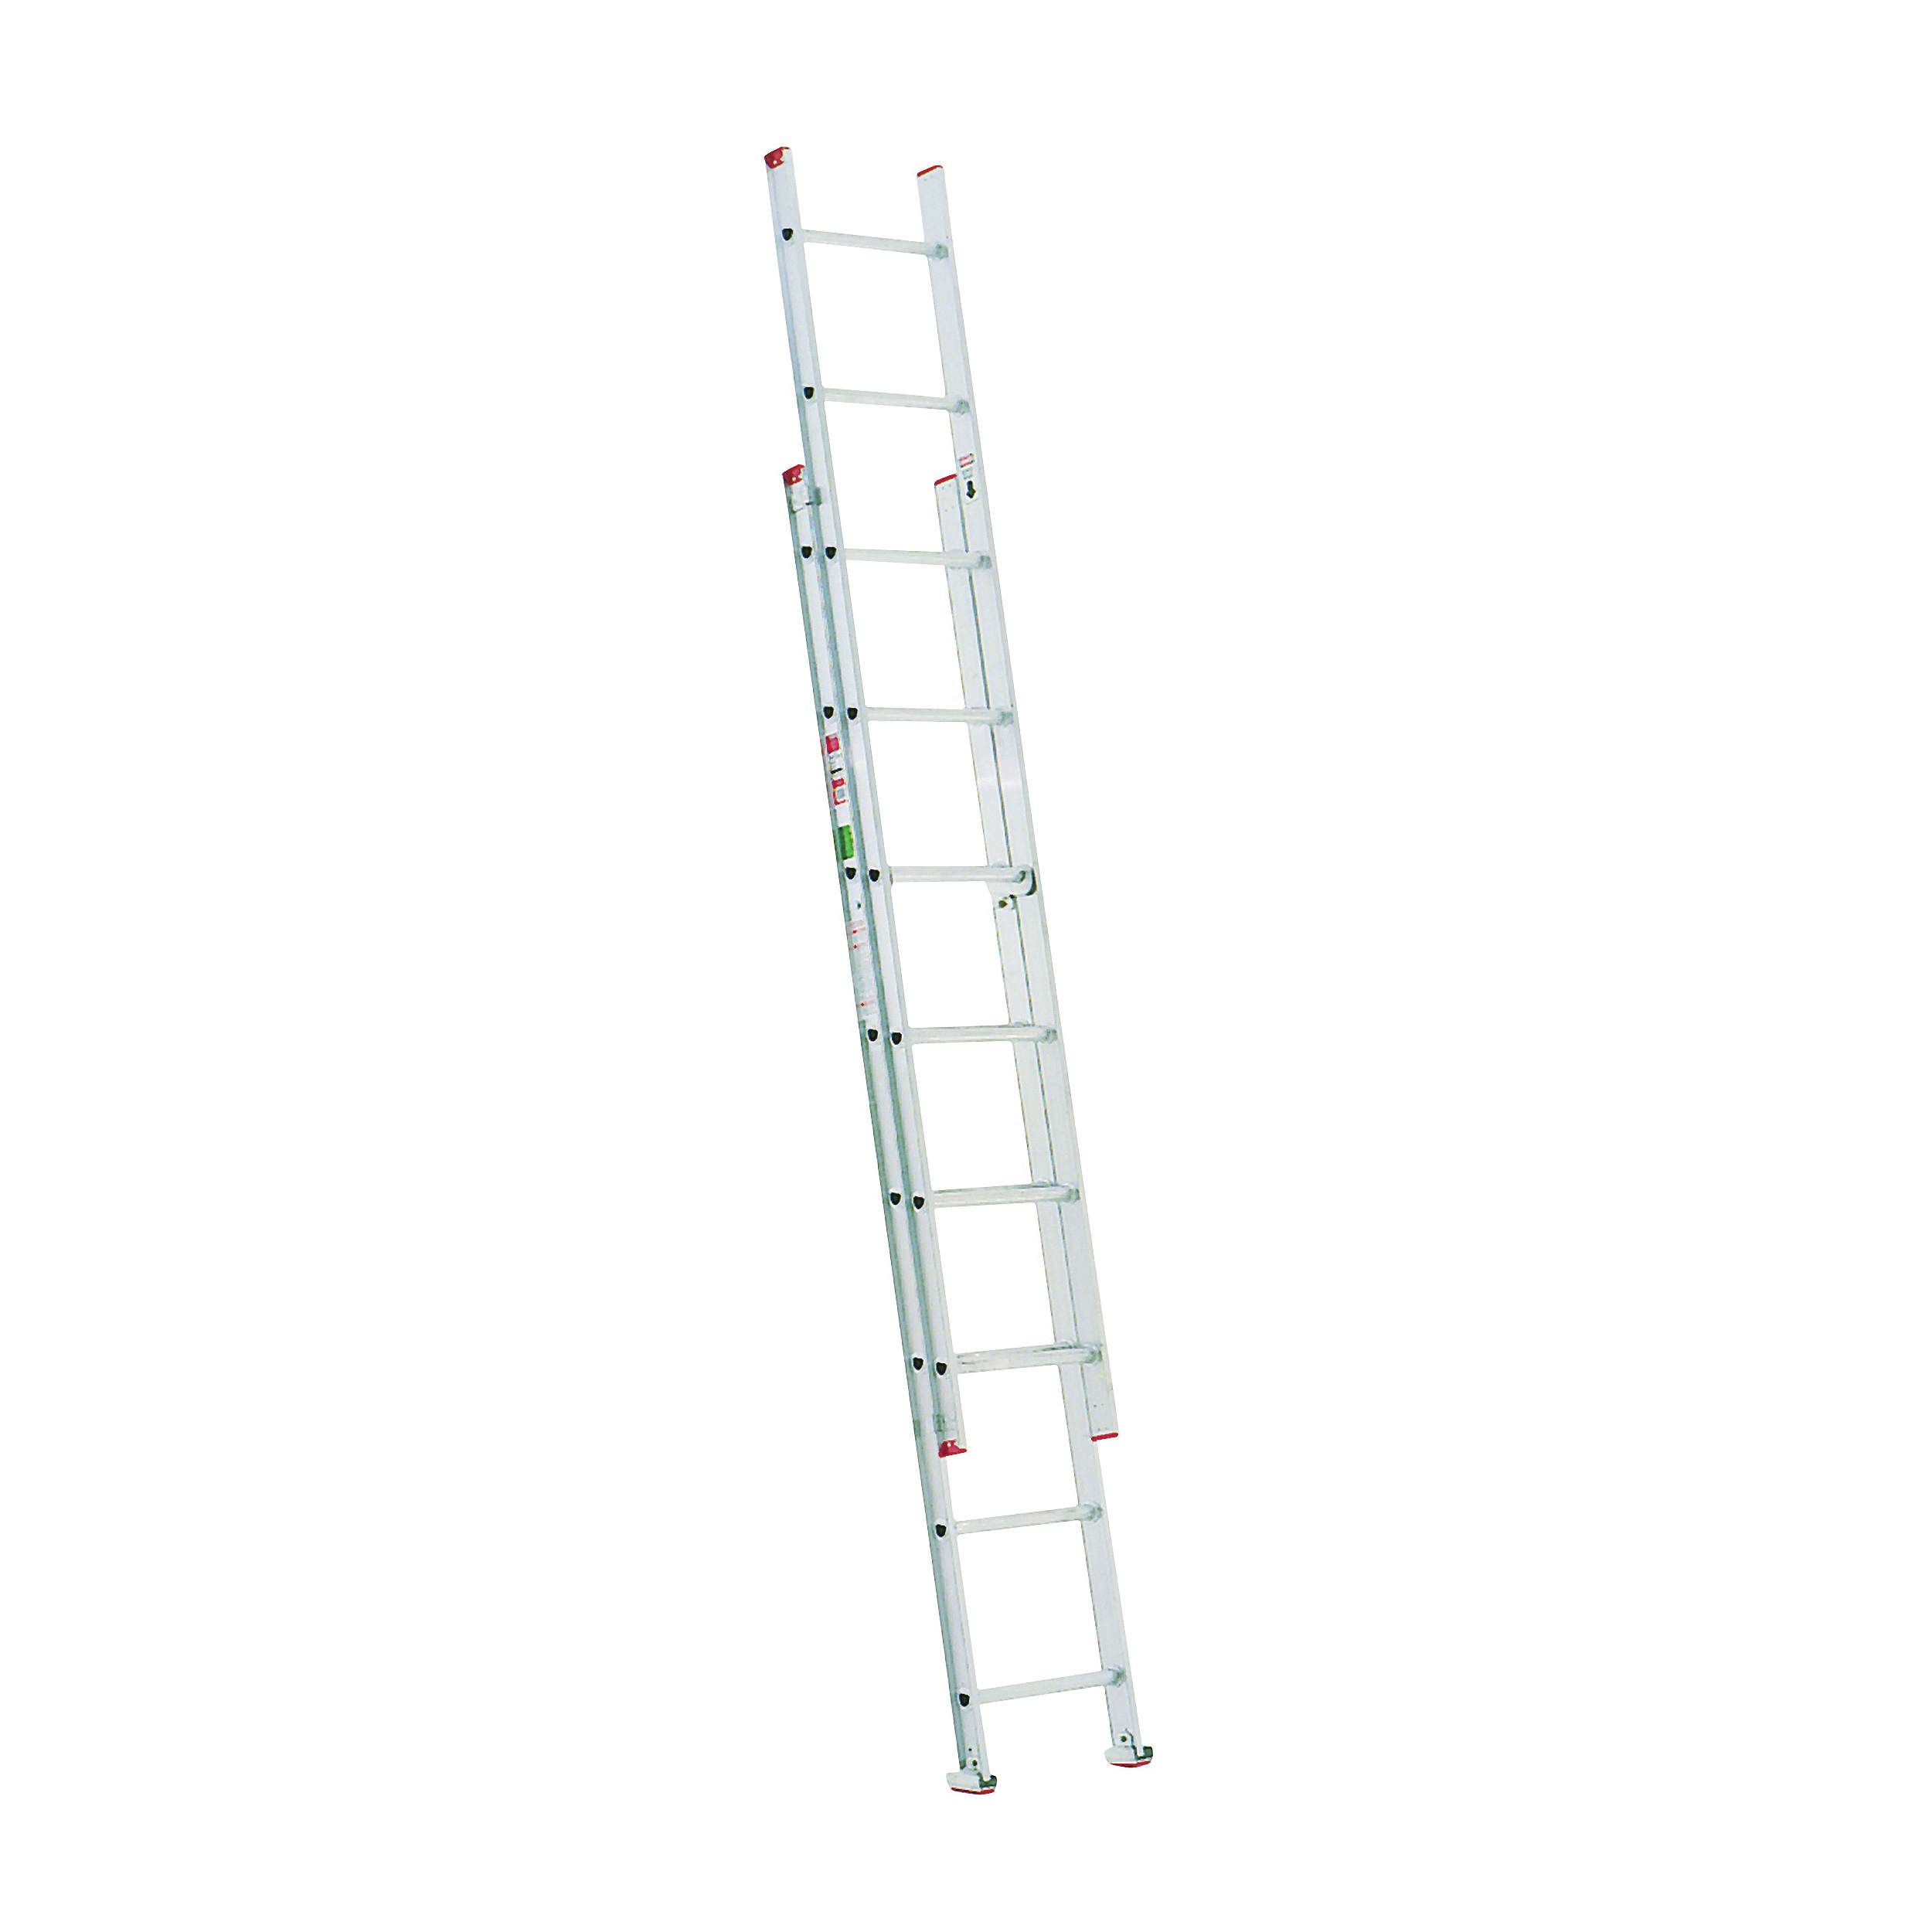 Picture of WERNER D716-2 Extension Ladder, 15 ft H Reach, 200 lb, Aluminum